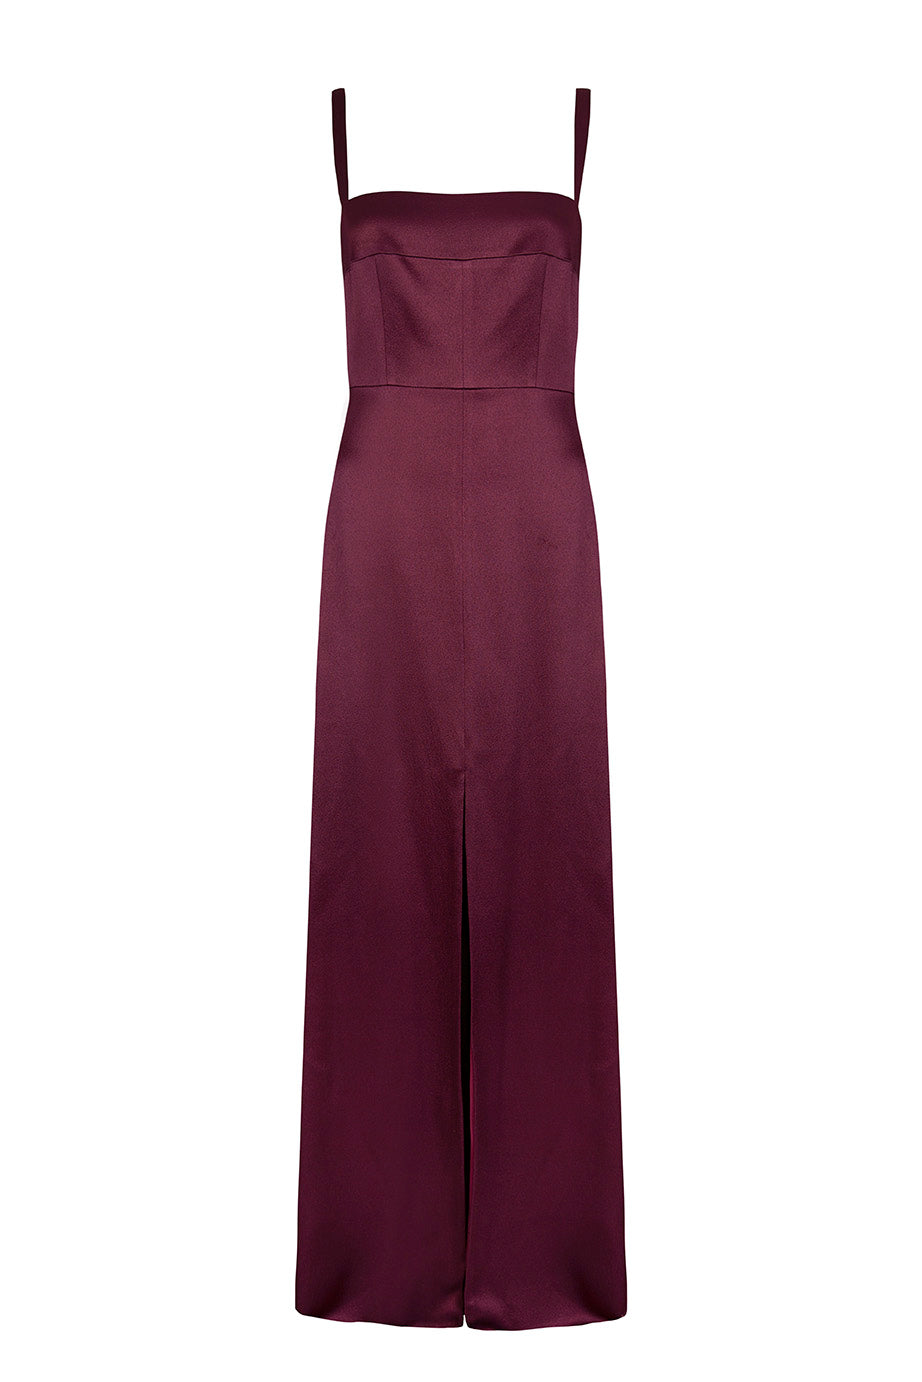 Load image into Gallery viewer, Square neck maxi dress